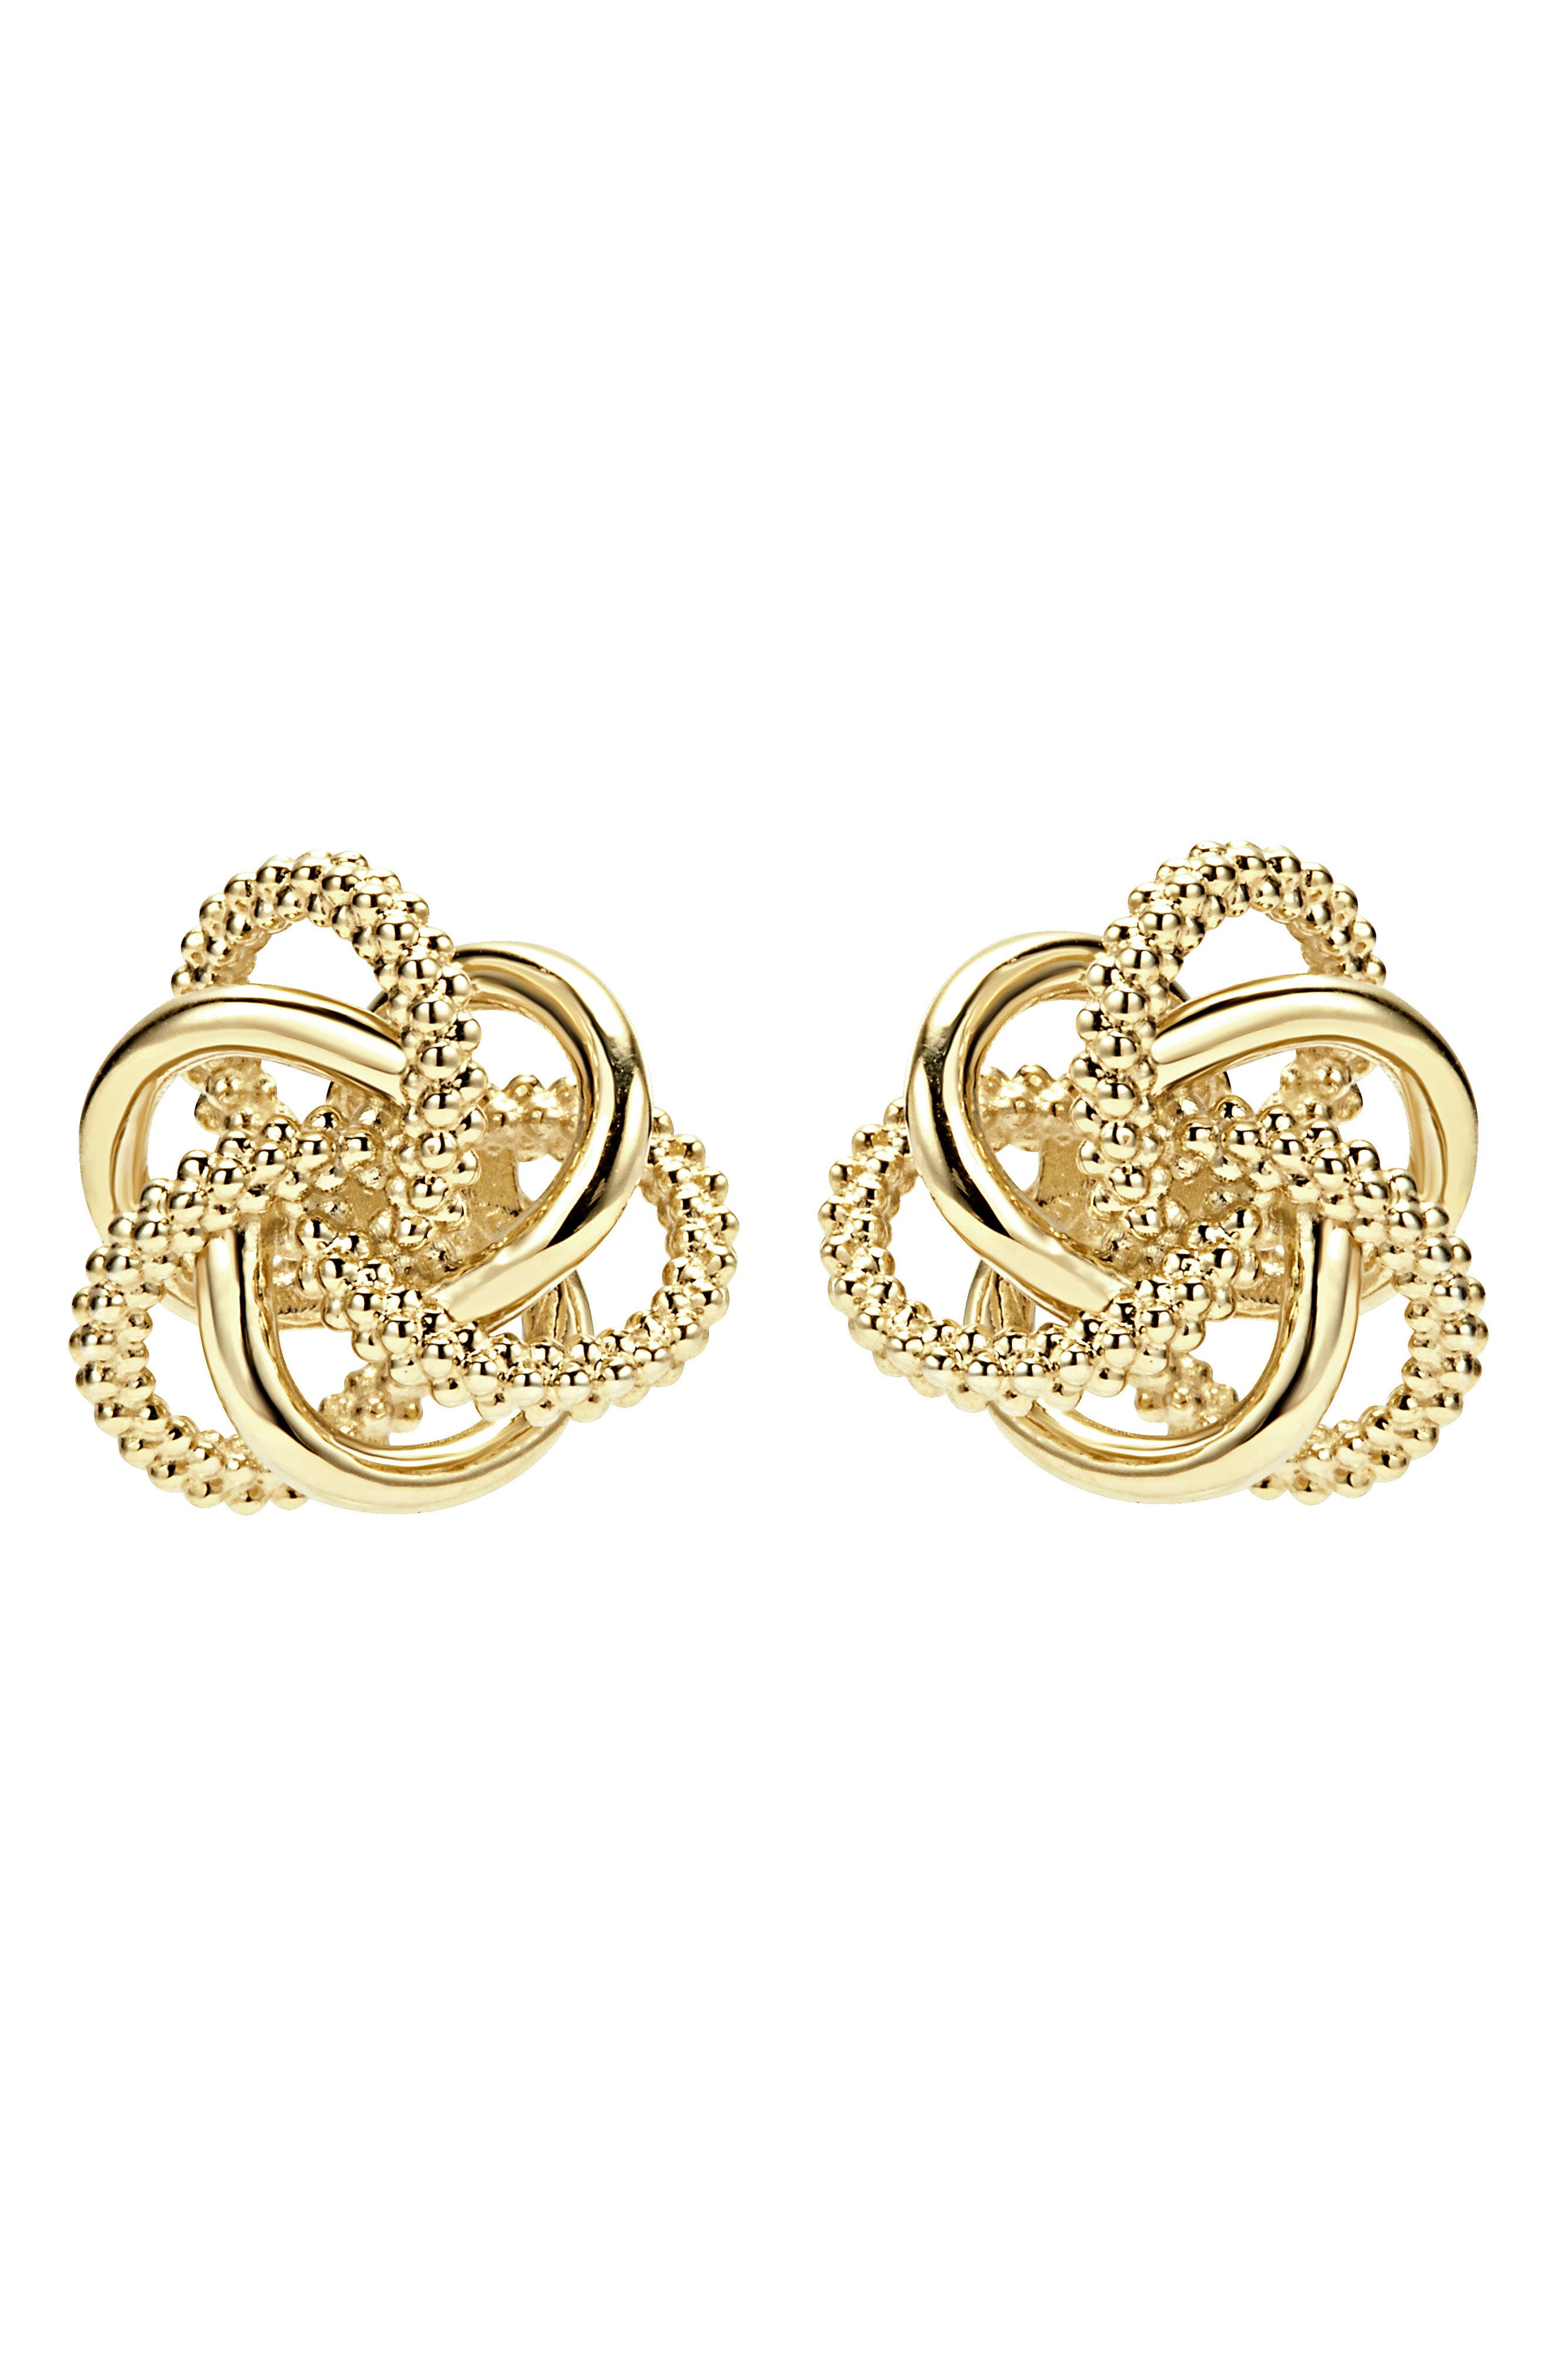 'Love Knot' 18k Gold Stud Earrings,                             Alternate thumbnail 2, color,                             GOLD